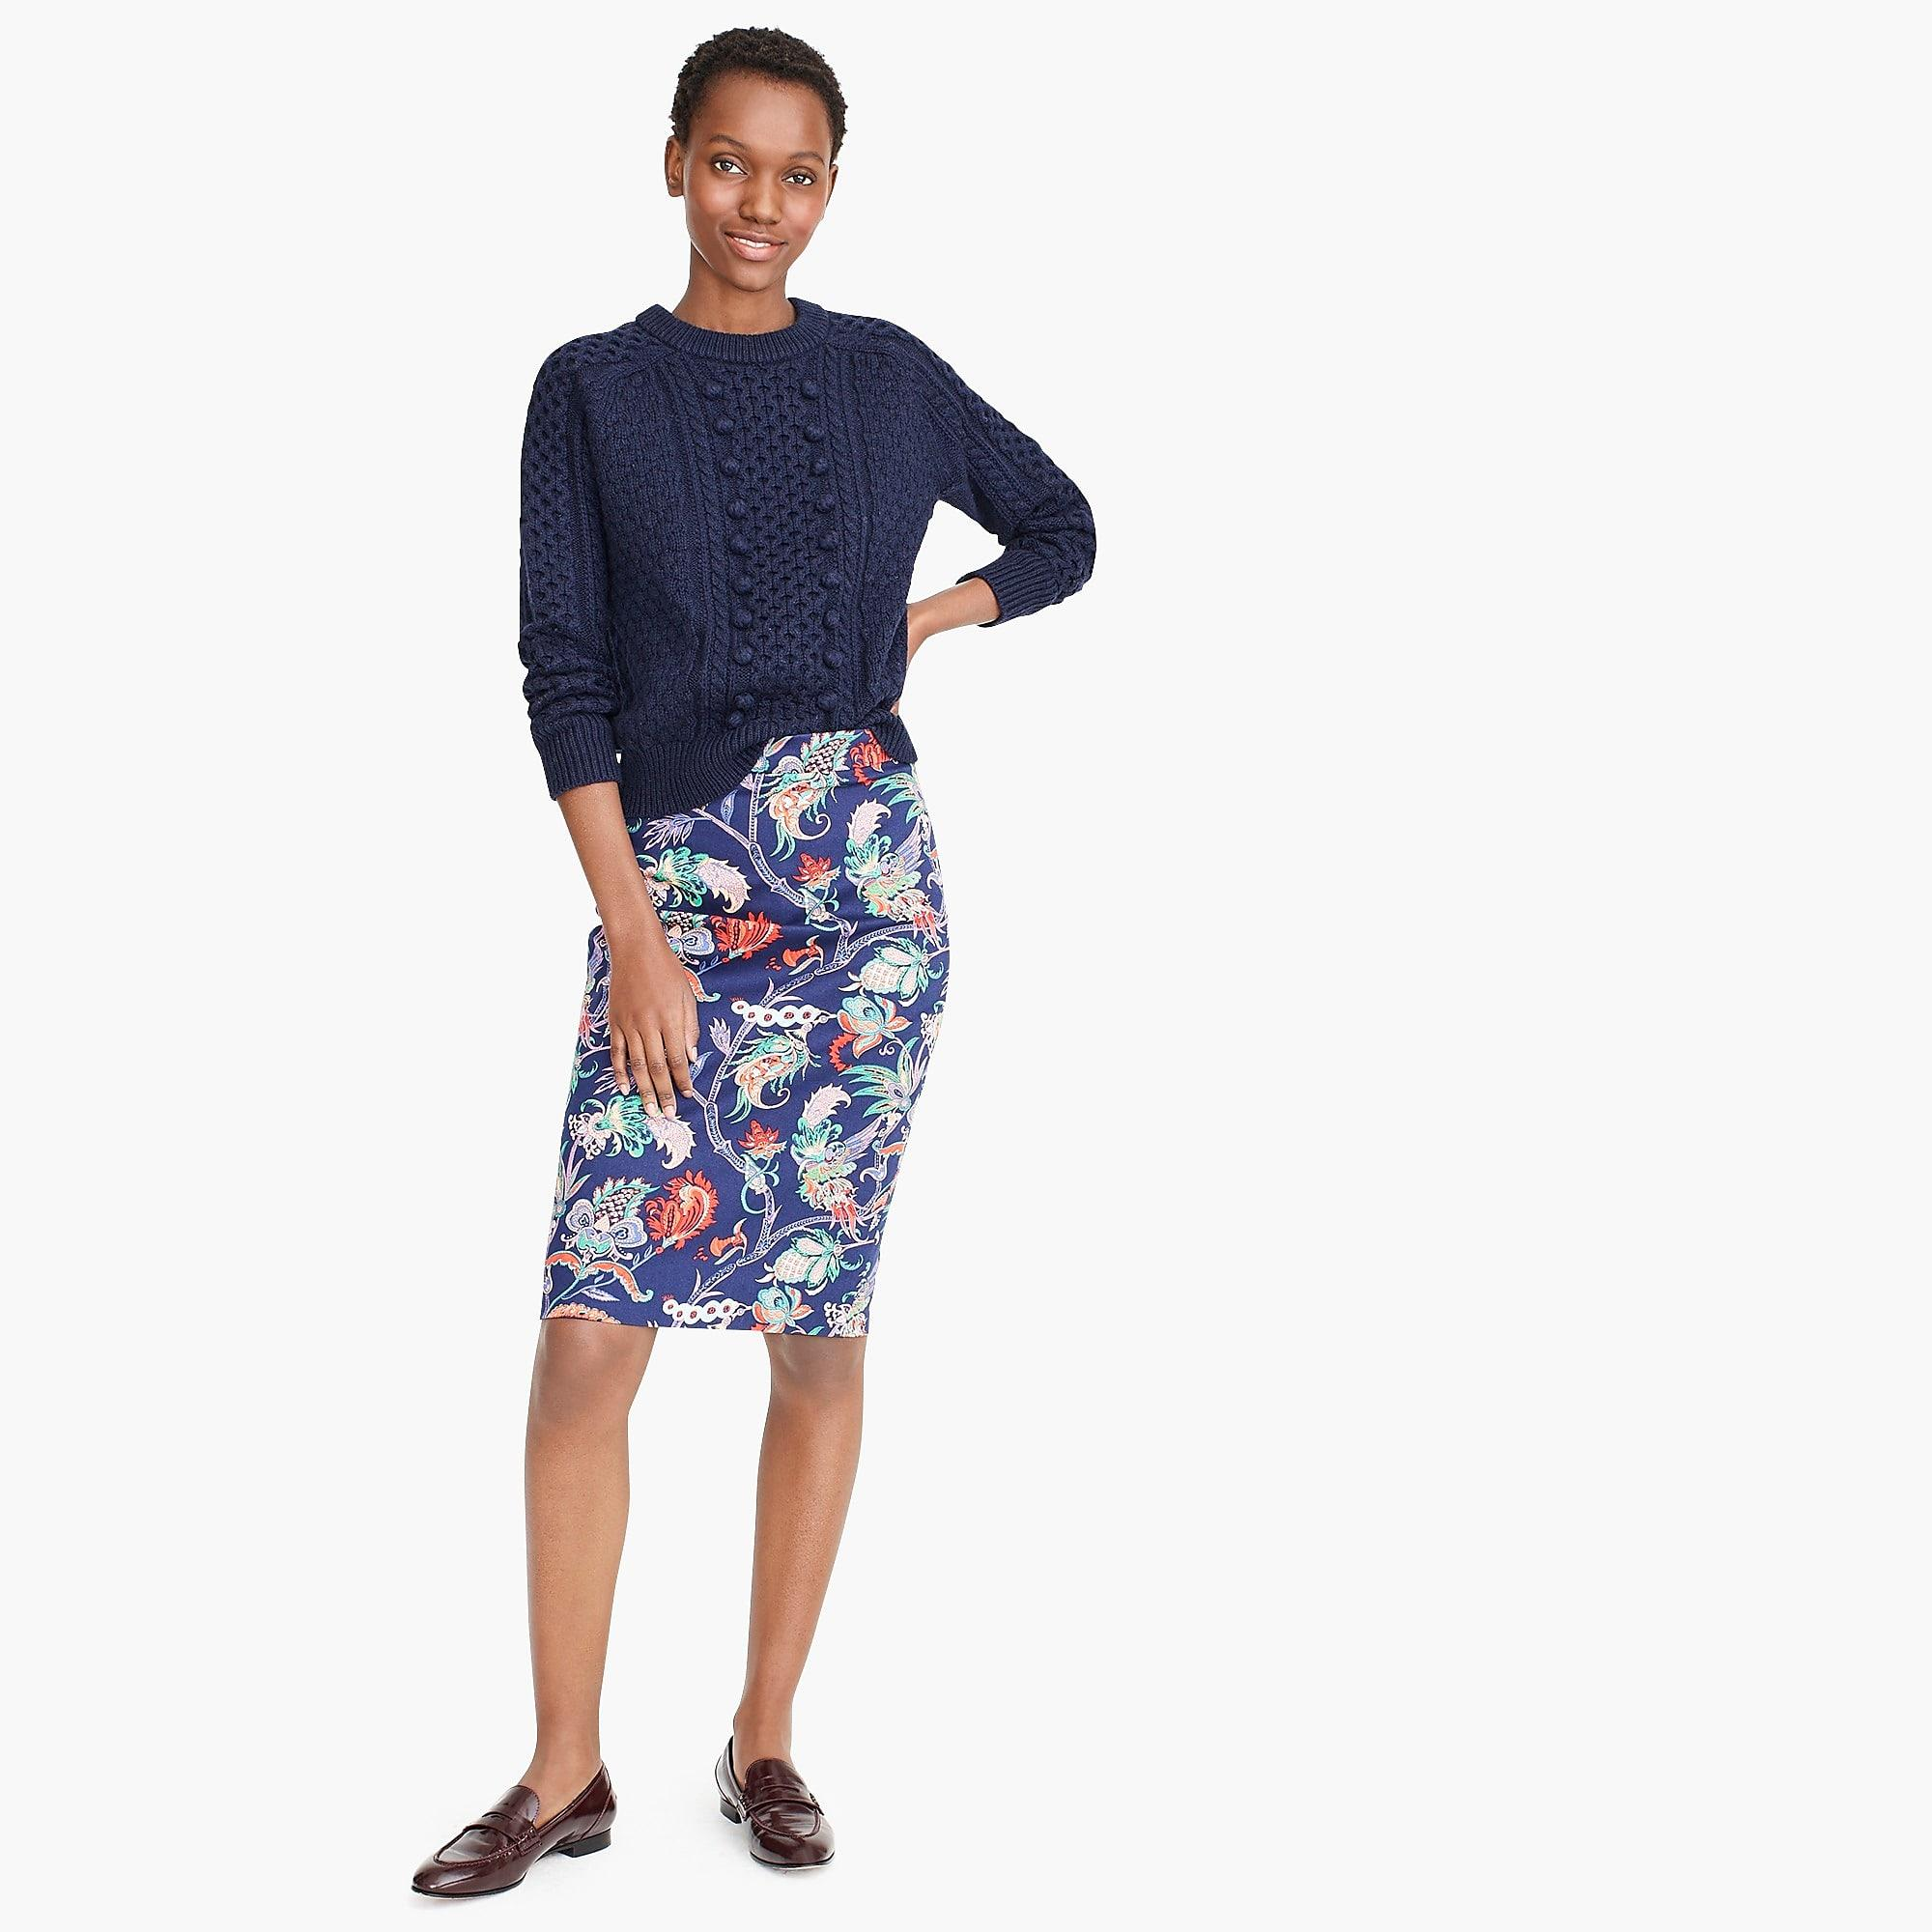 05fdd47cf787 J.Crew. Women's Blue Petite No. 2 Pencil Skirt In Floral Two-way Stretch  Cotton